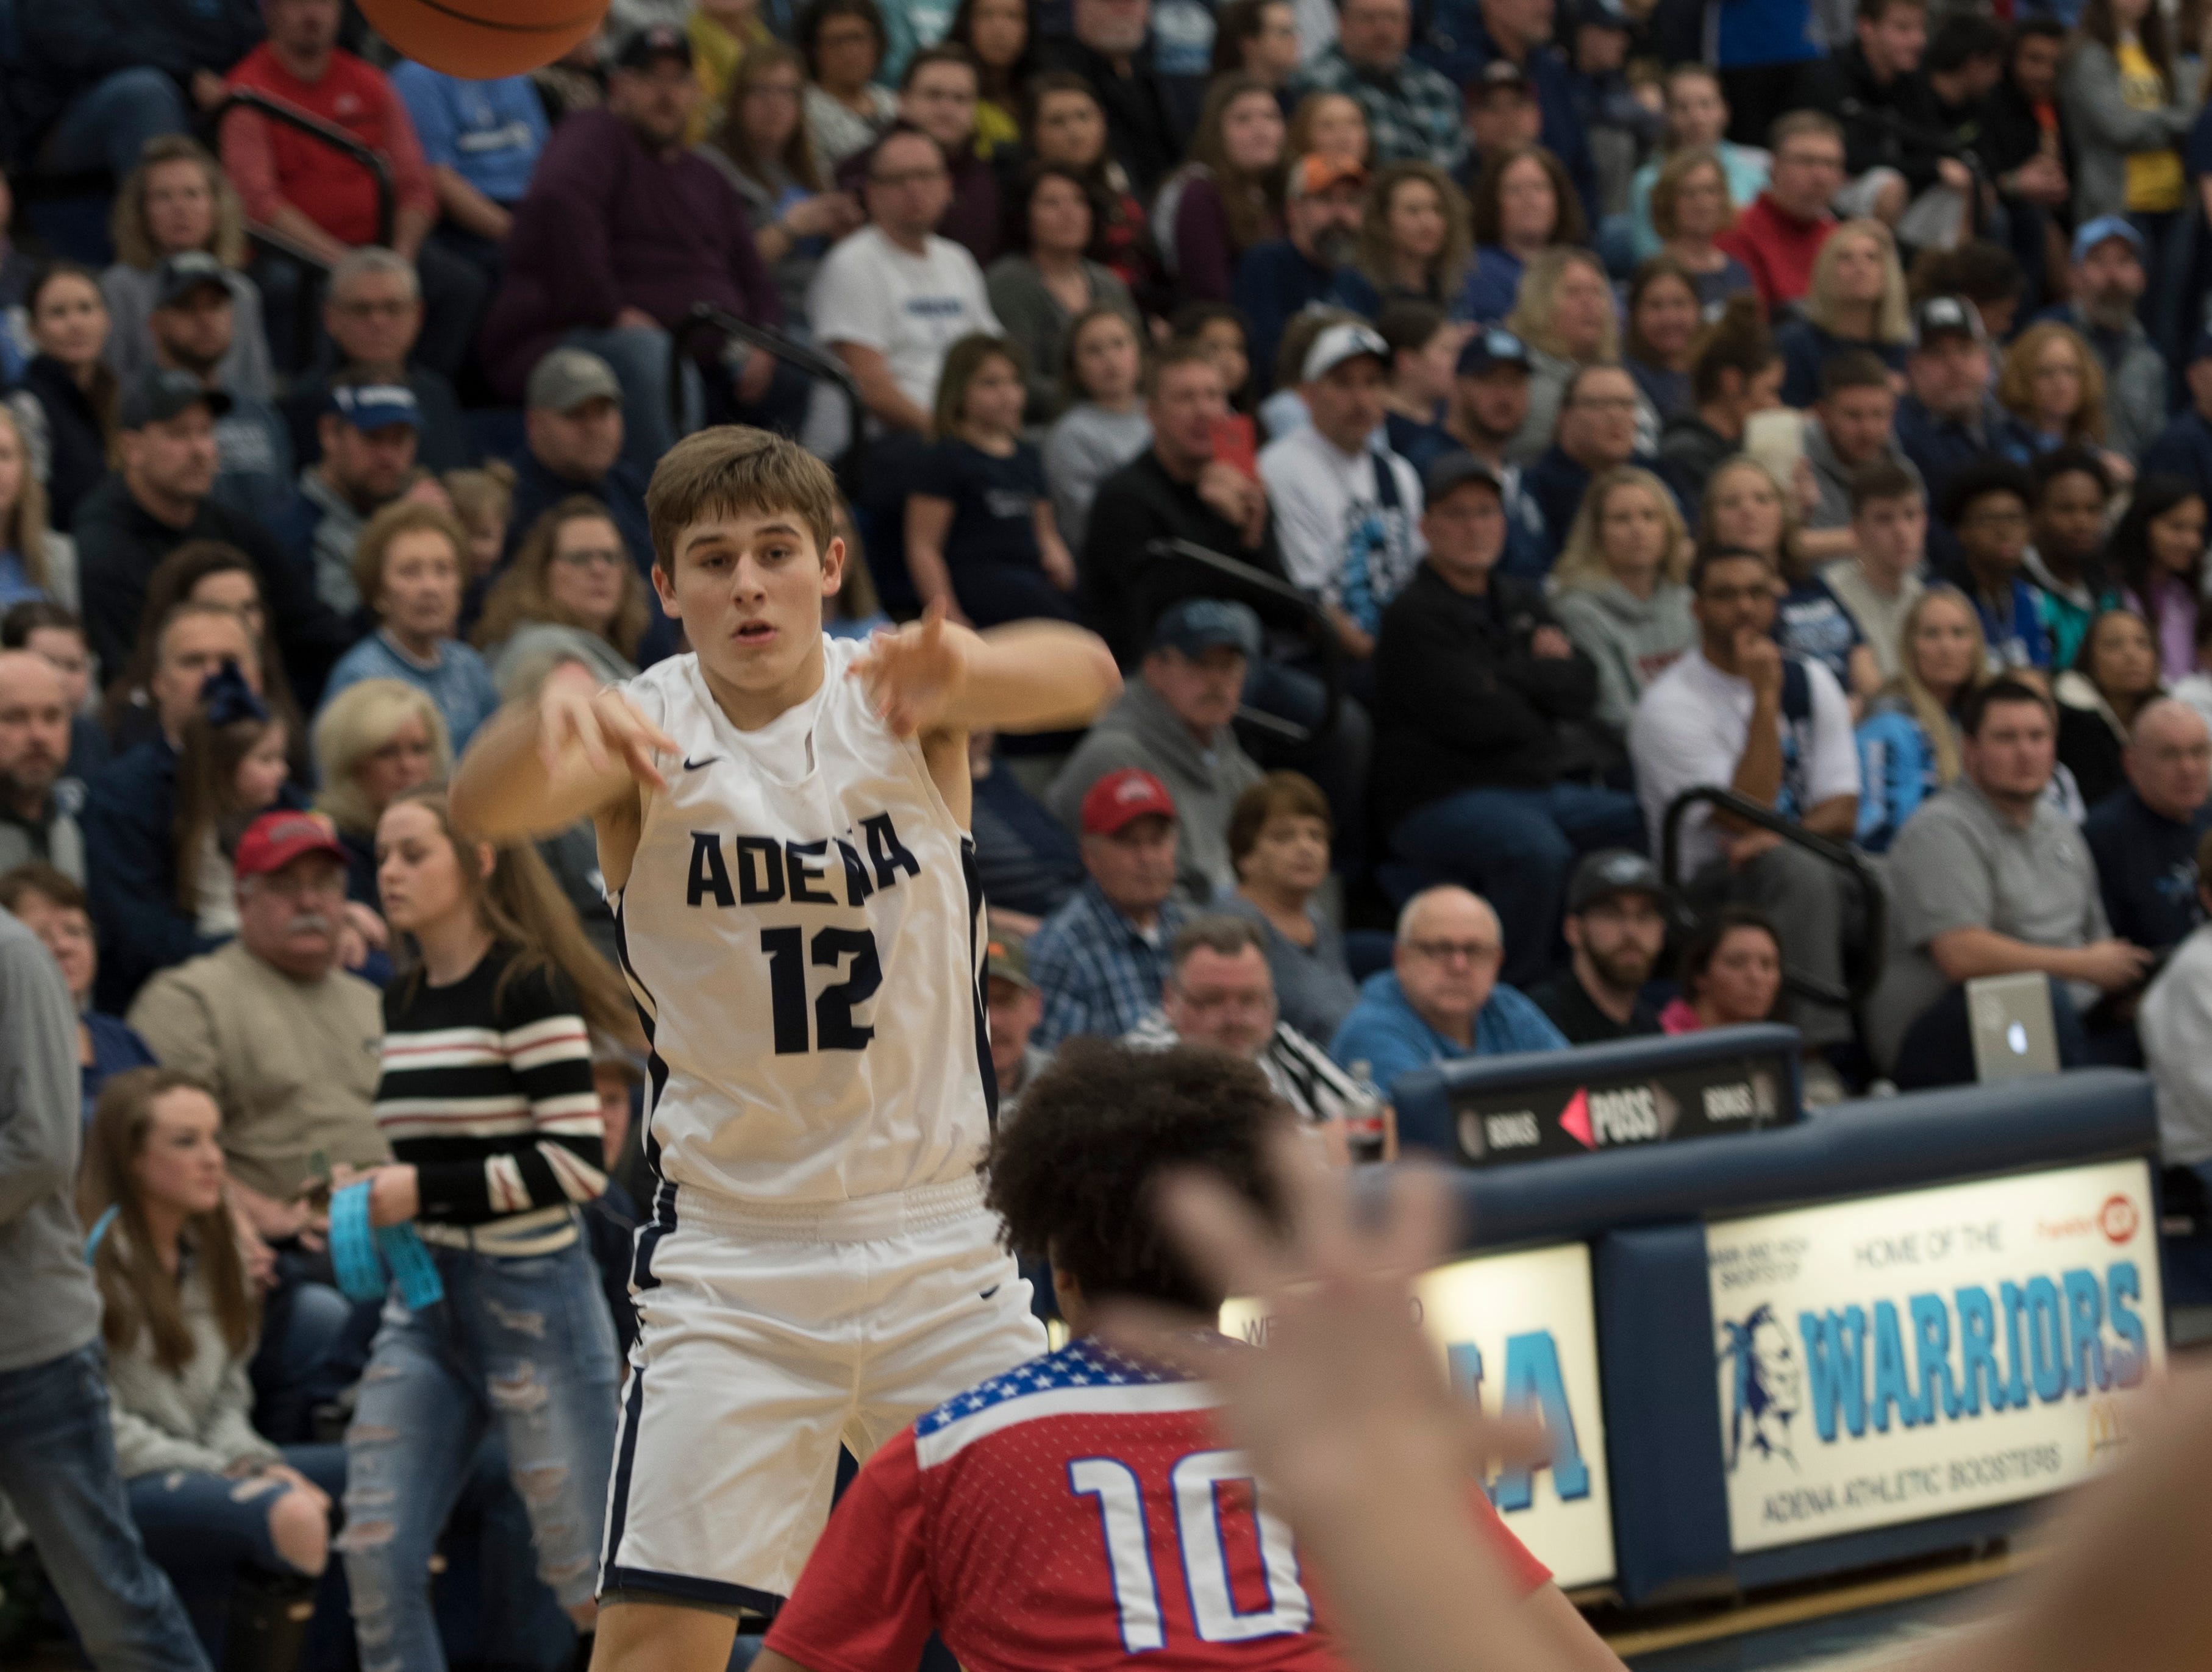 Zane Trace defeated Adena 67-52 Friday night in Frankfort, Ohio, making them undefeated in the SVC.